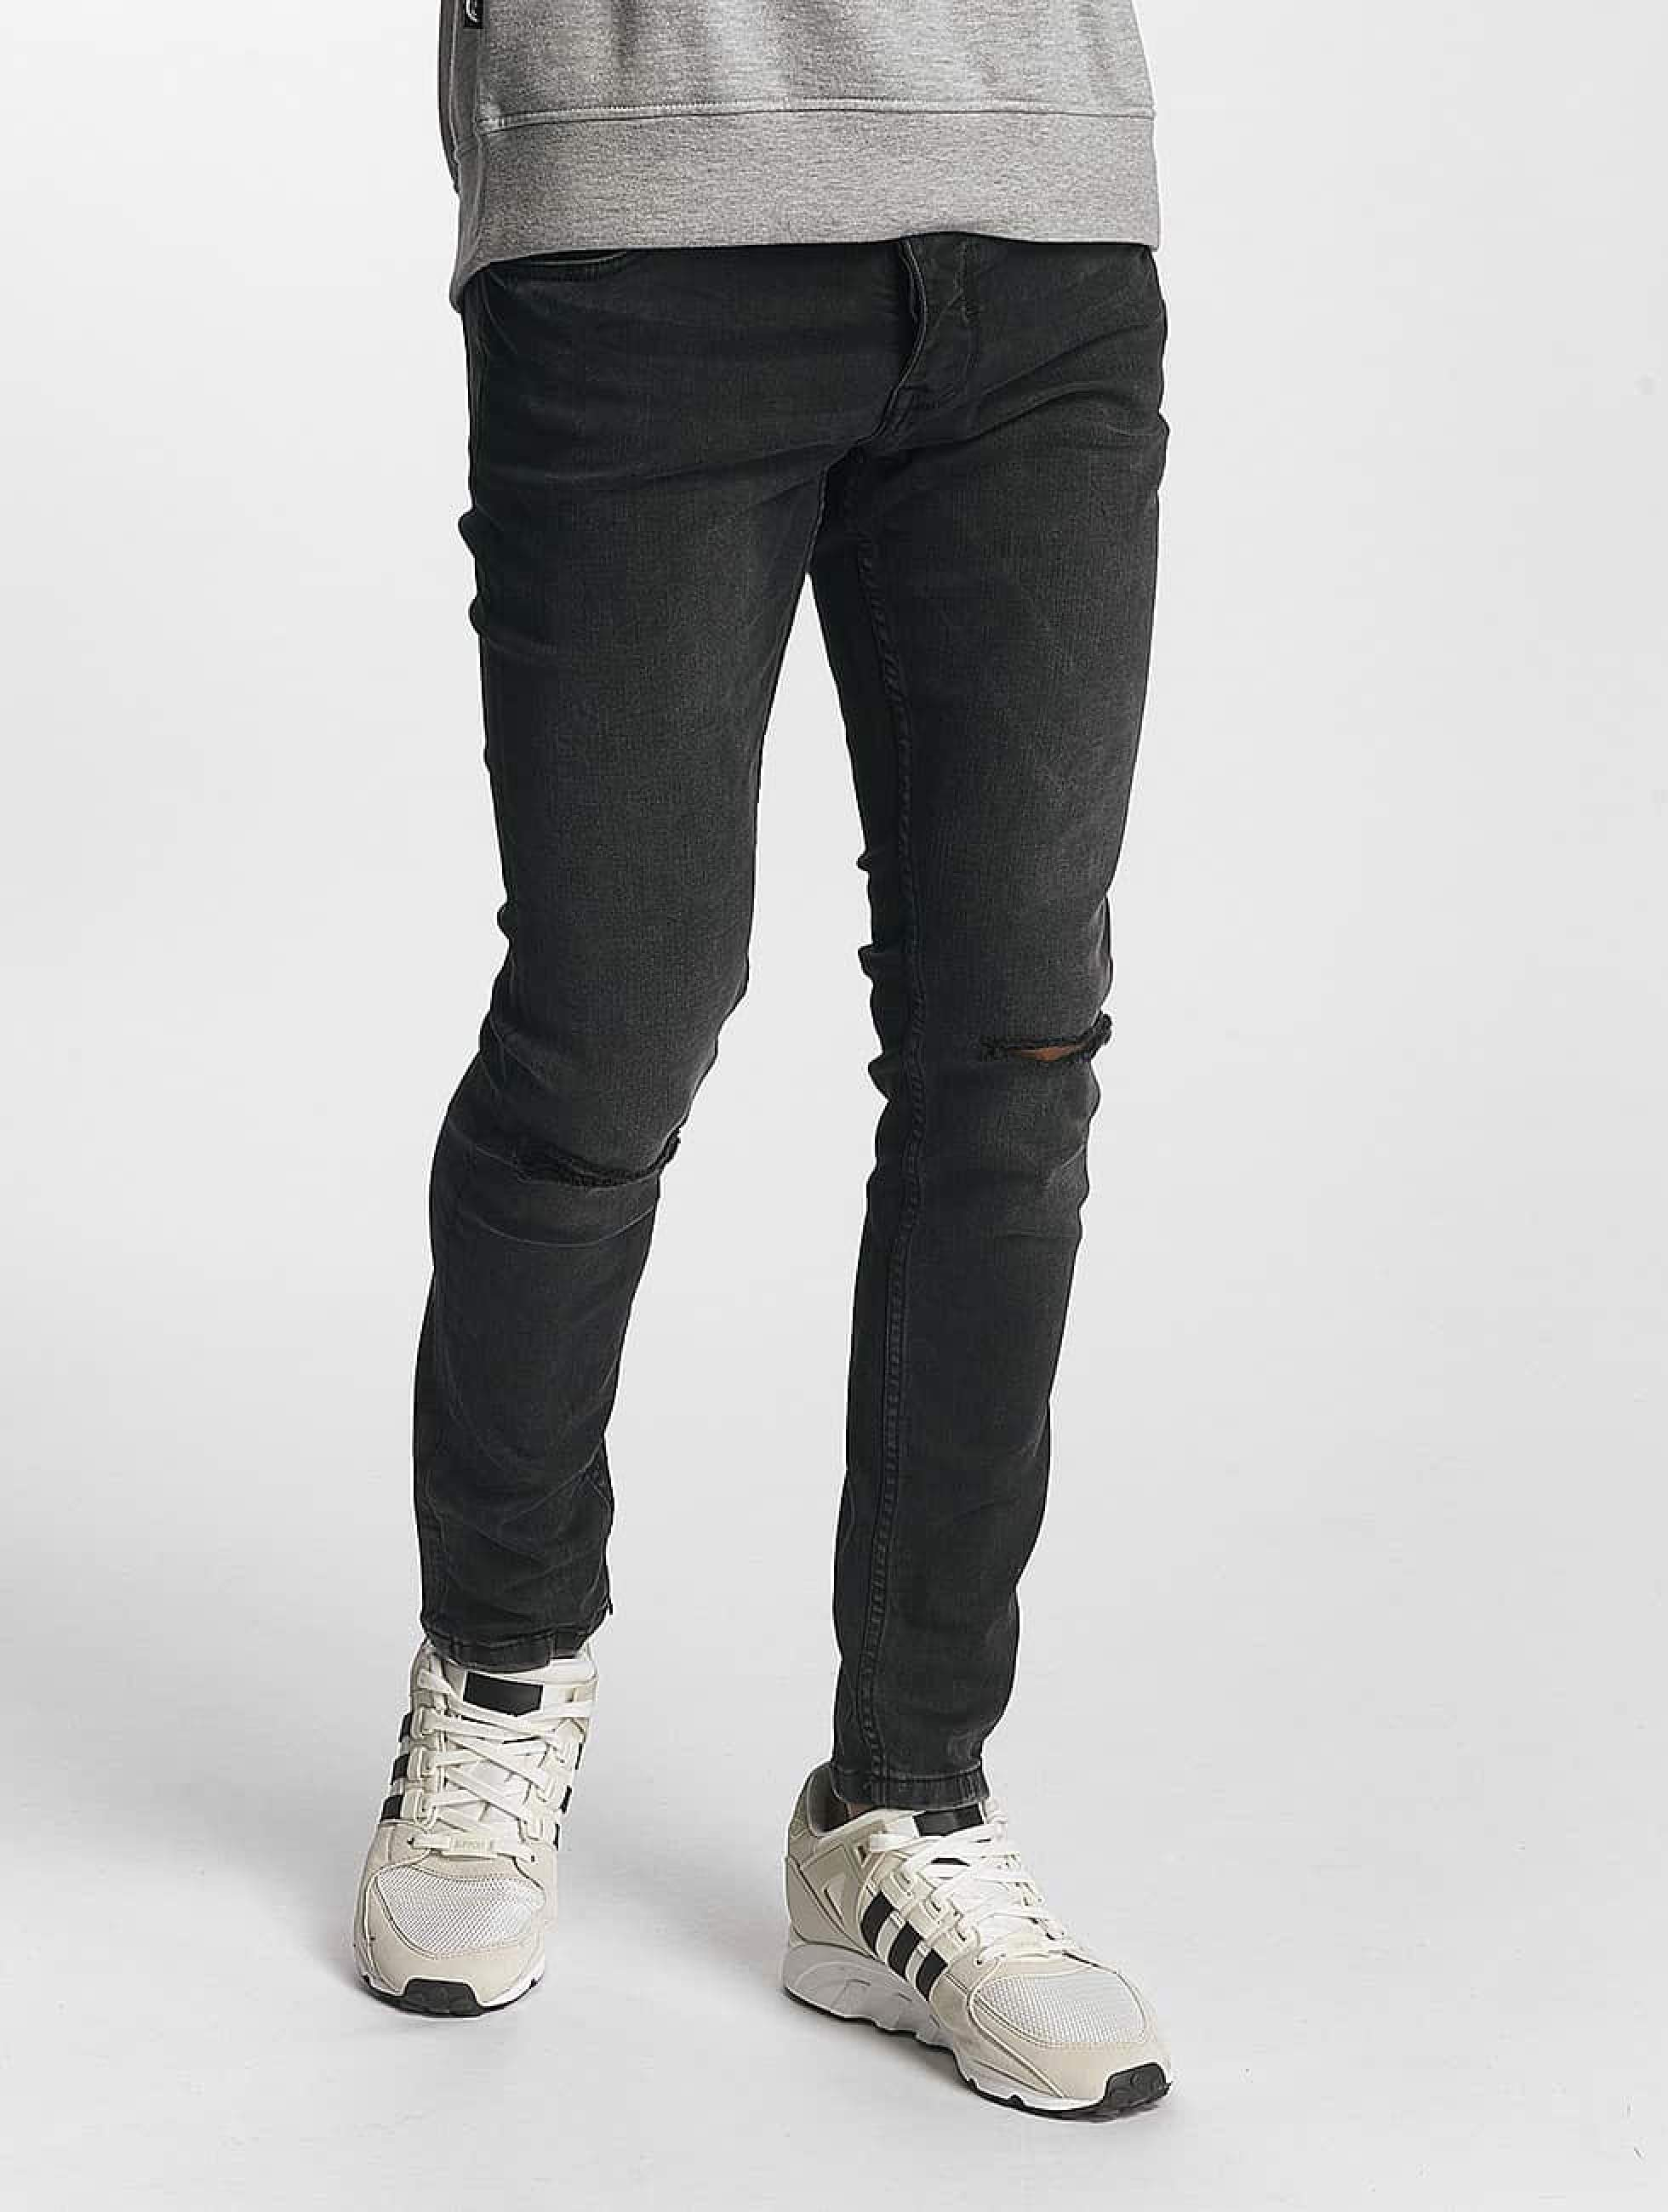 2Y / Slim Fit Jeans Ethan in grey W 36